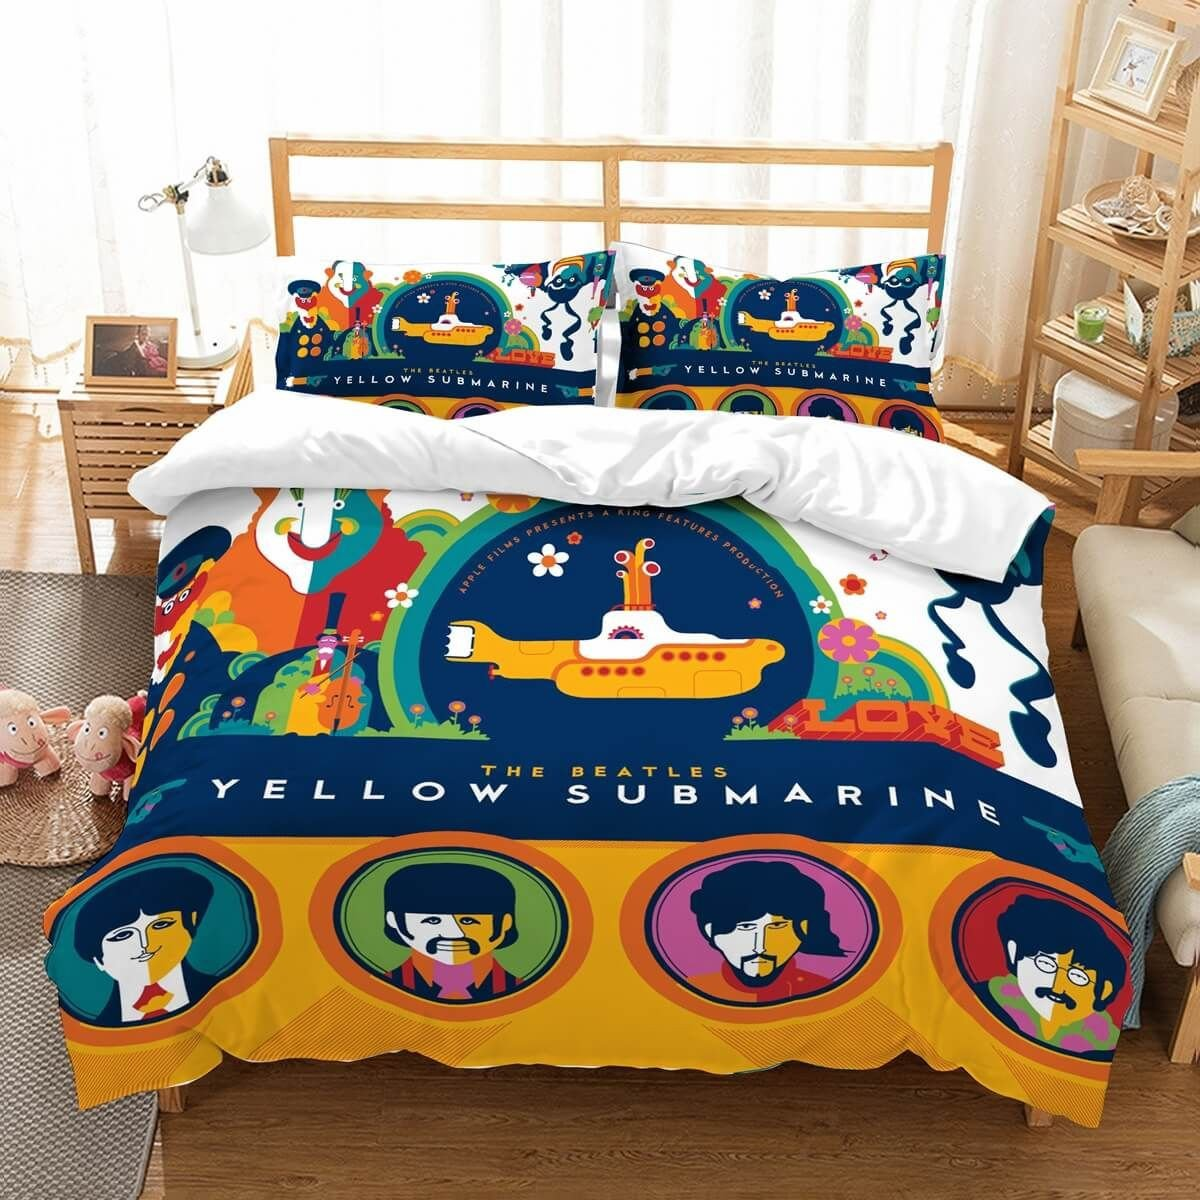 Bedroom Bedding and Curtain Set Best Of 3d Customize the Beatles Bedding Set Duvet Cover Set Bedroom